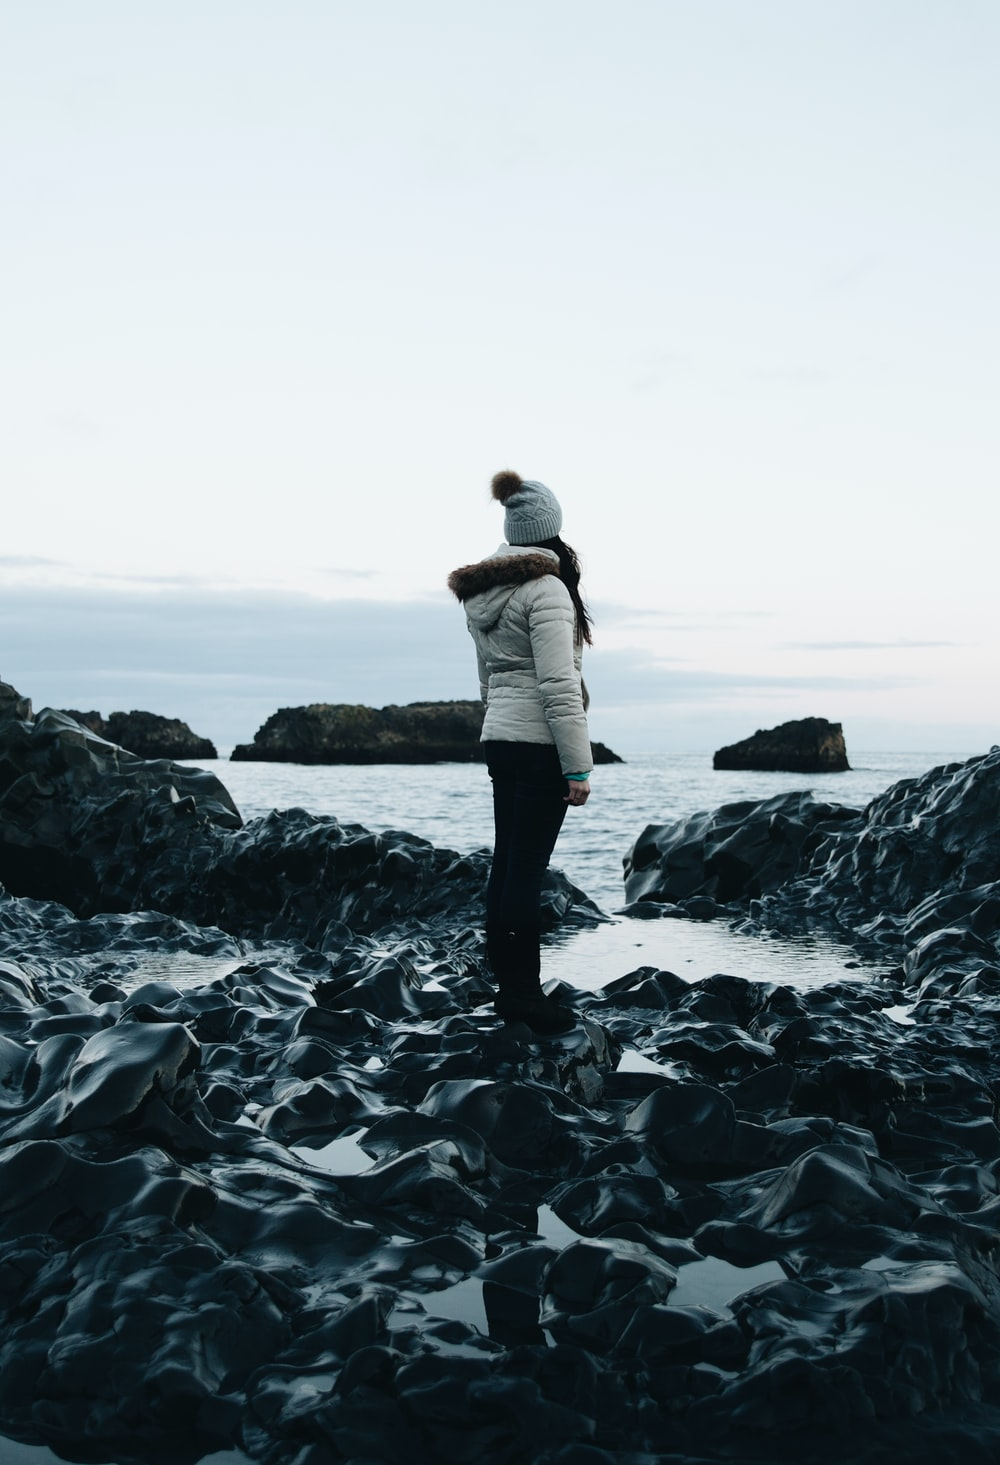 woman in white parka jacket and black pants outfit standing on rocks near body of water under white sky at daytime